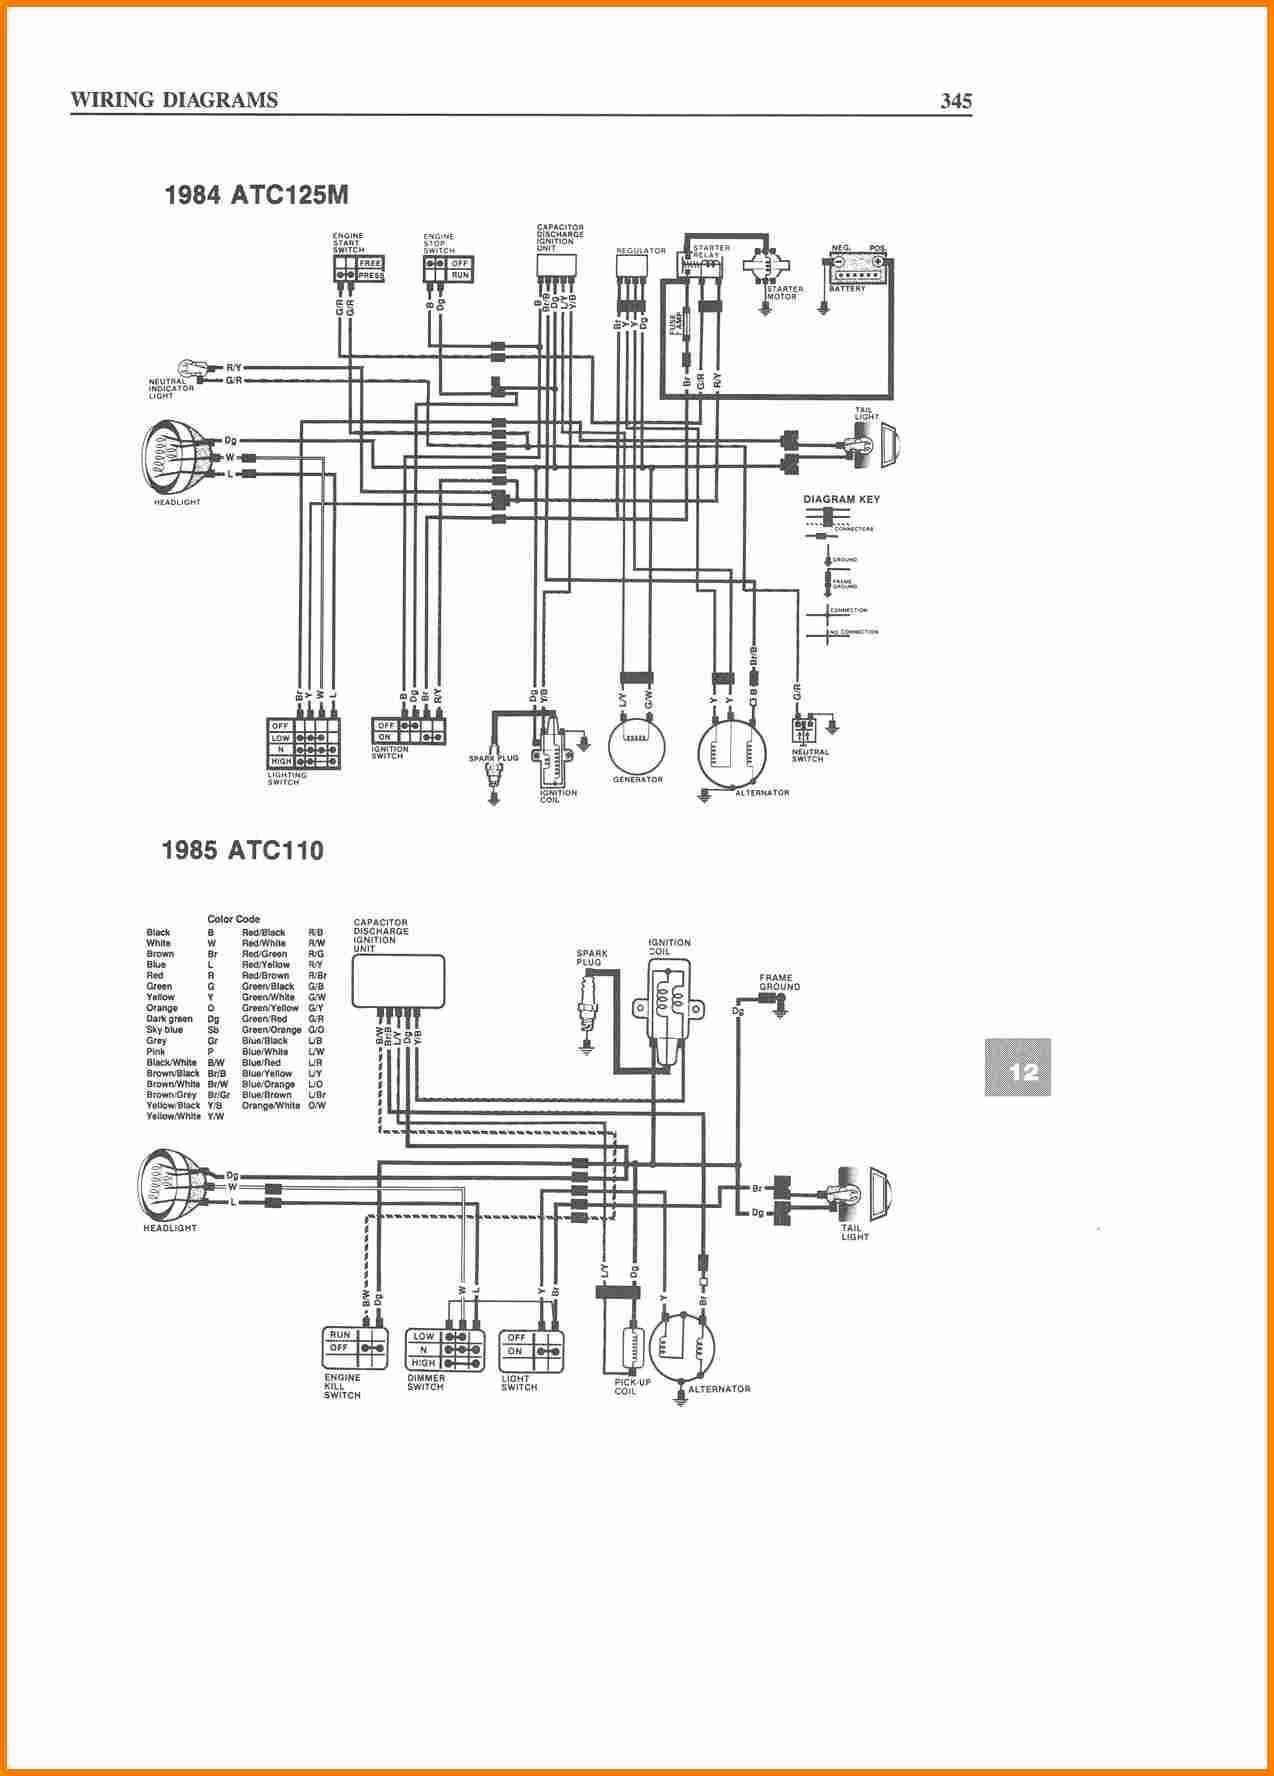 50cc Scooter Diagram - Unlimited Wiring Diagram on smart car diagrams, hvac diagrams, switch diagrams, friendship bracelet diagrams, electronic circuit diagrams, honda motorcycle repair diagrams, electrical diagrams, engine diagrams, internet of things diagrams, sincgars radio configurations diagrams, transformer diagrams, troubleshooting diagrams, battery diagrams, series and parallel circuits diagrams, led circuit diagrams, lighting diagrams, gmc fuse box diagrams, pinout diagrams, motor diagrams,